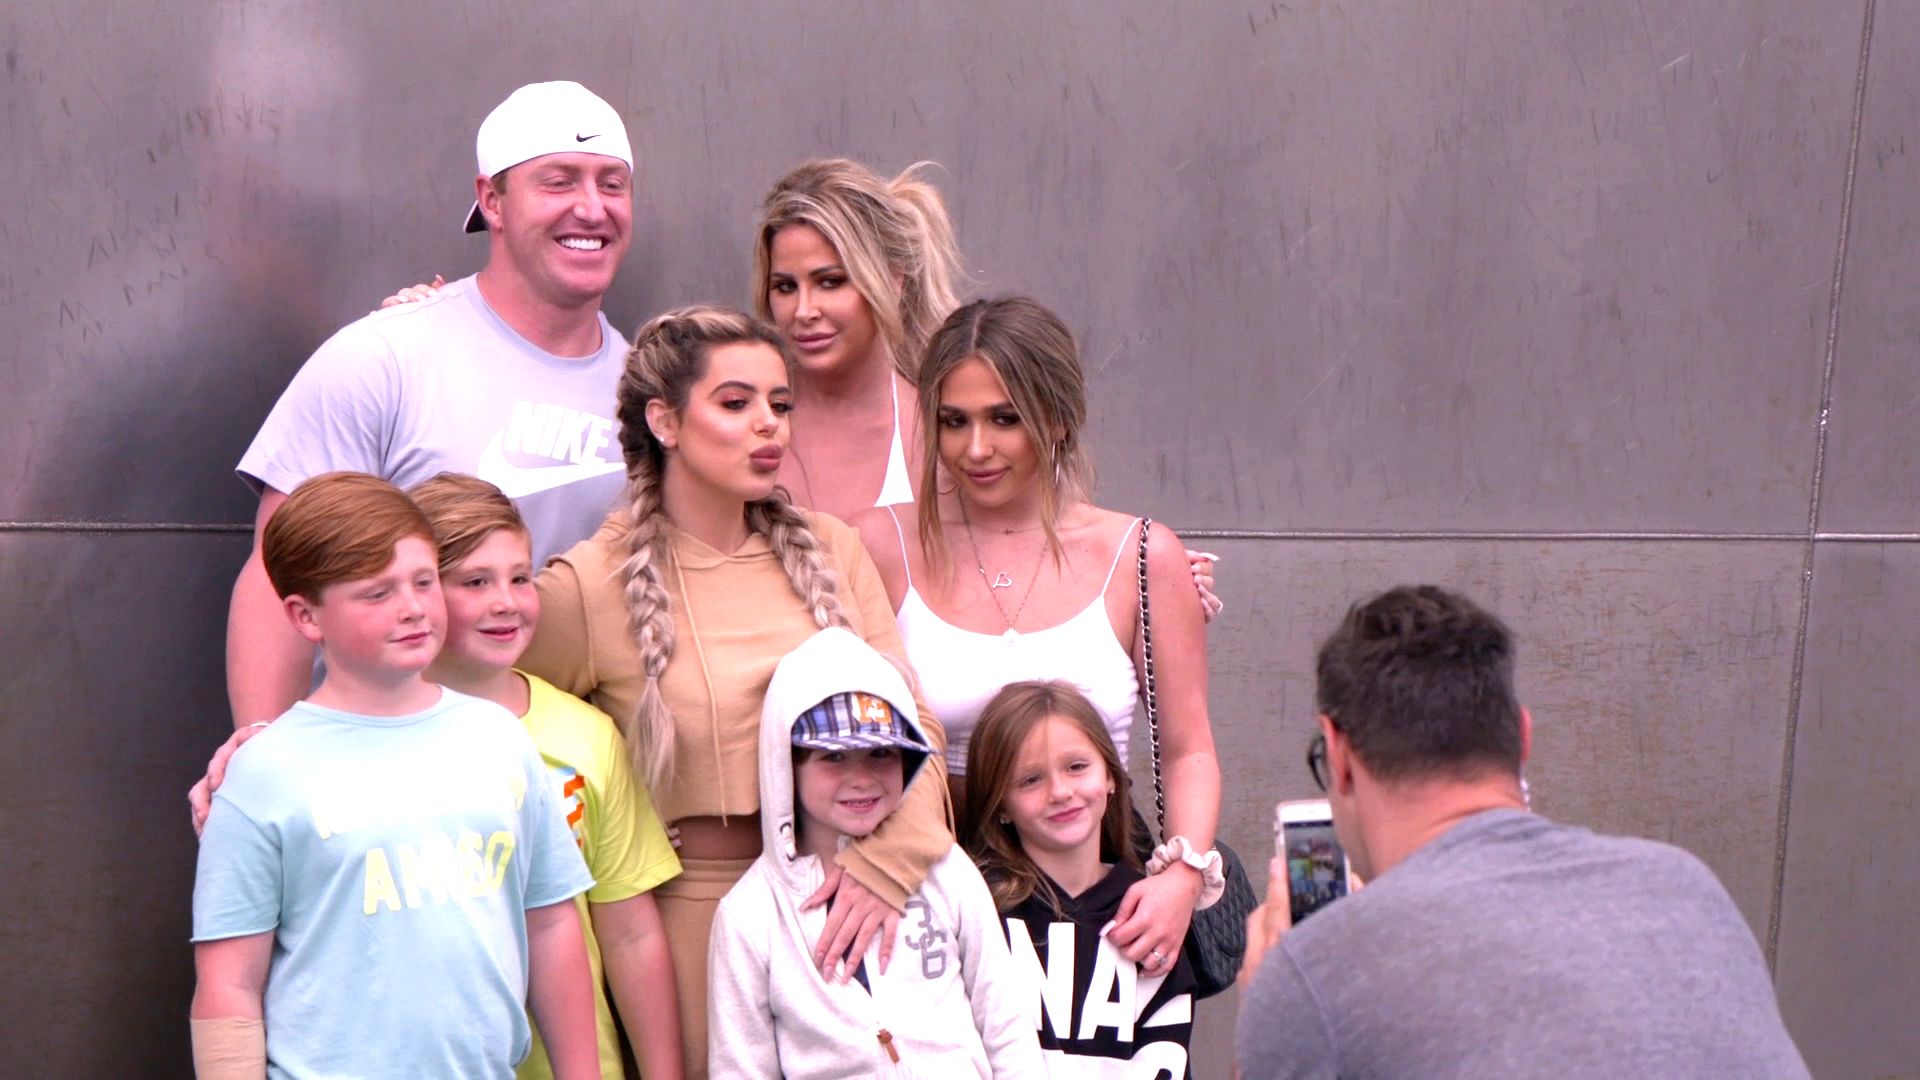 Kroy Biermann Hopes His Family Makes Lifelong Memories on This Trip